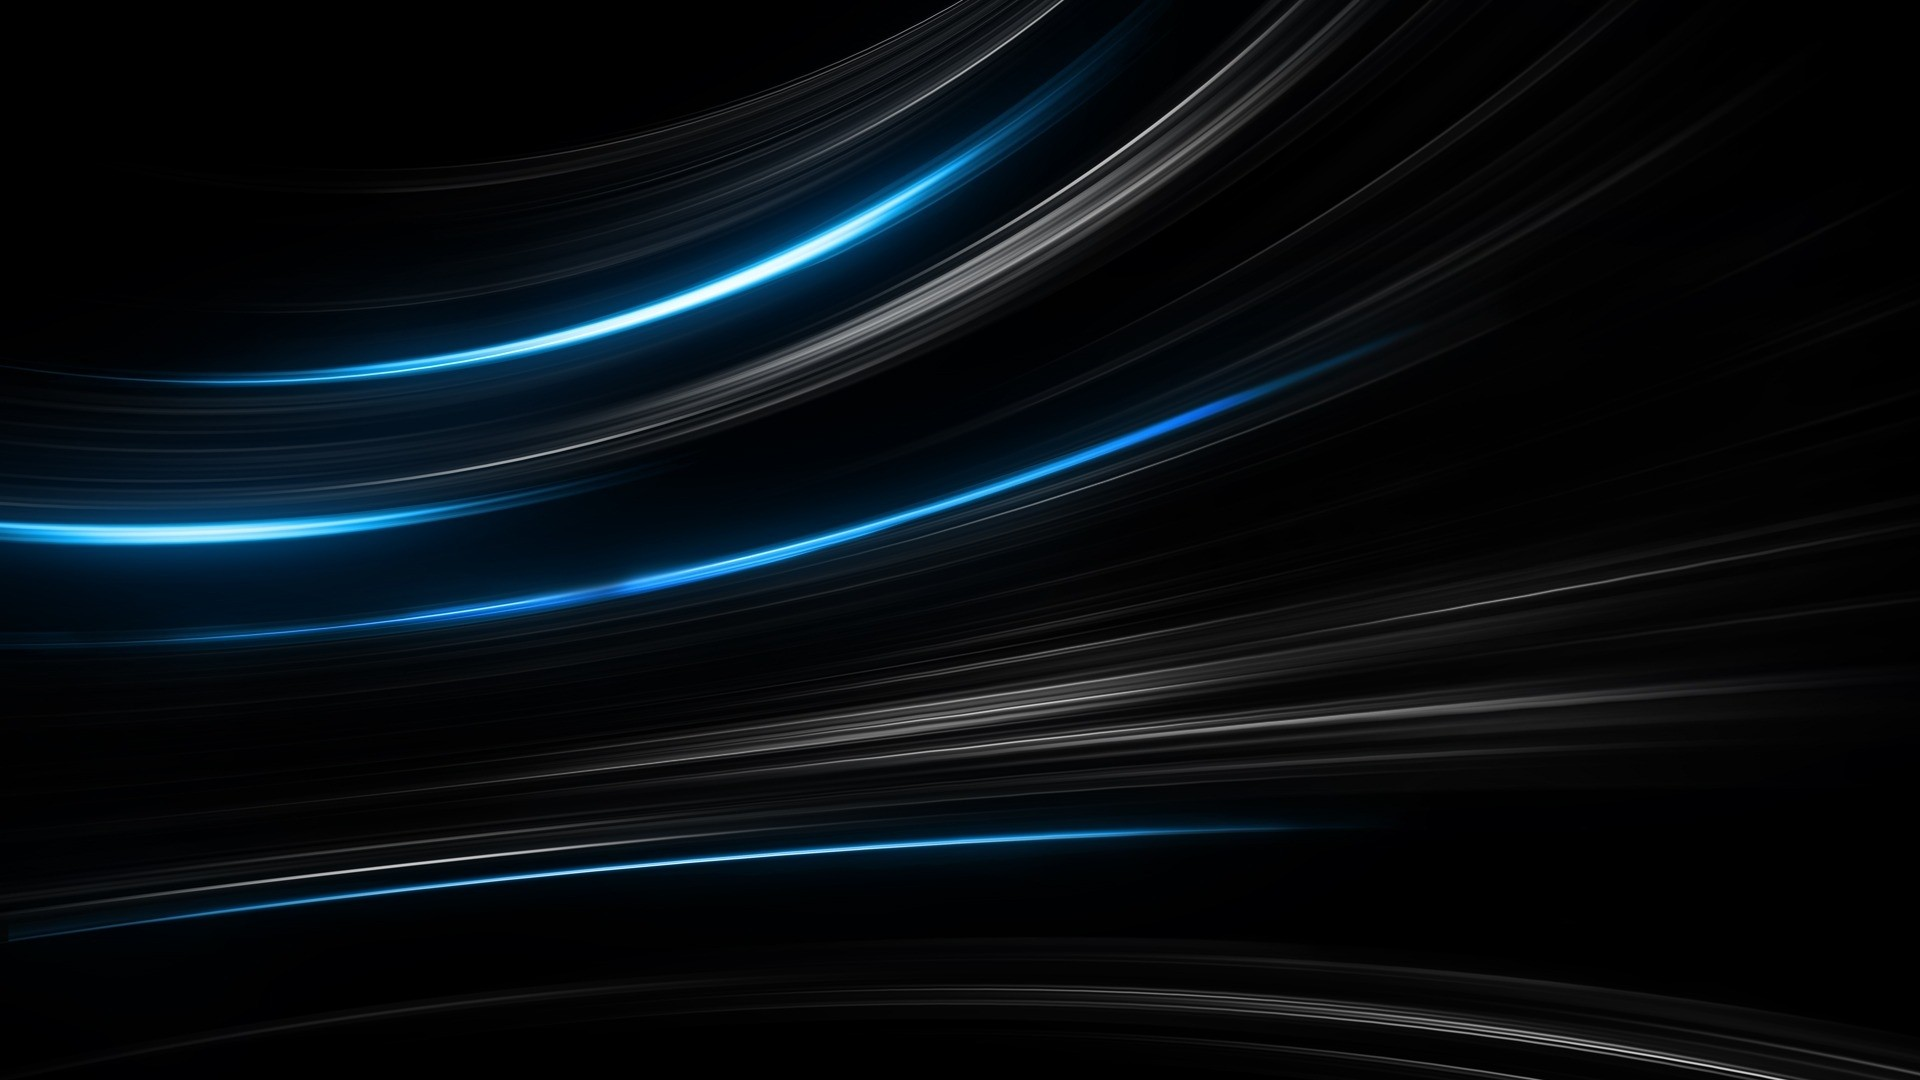 Black And Blue Free Wallpaper and Background